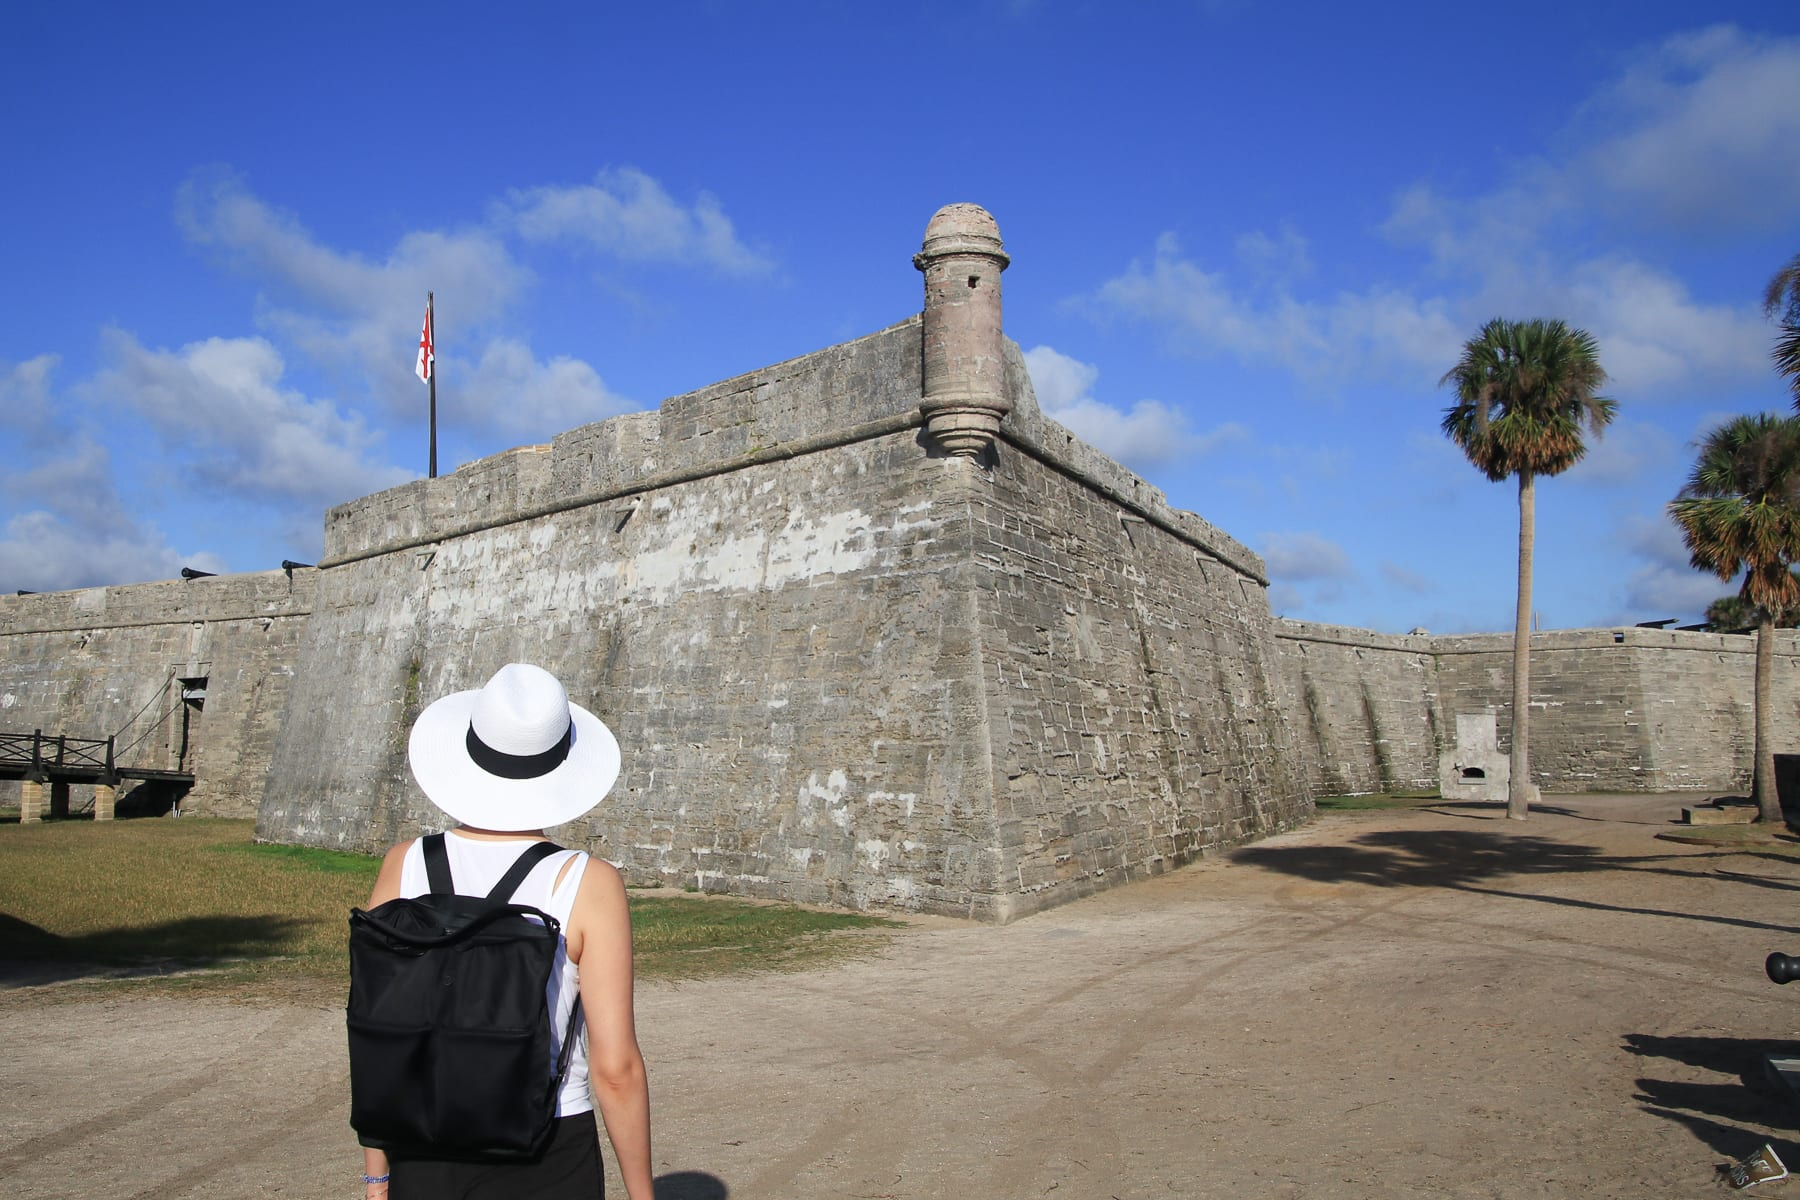 15-FL-journey-staugustine-fort03.jpg